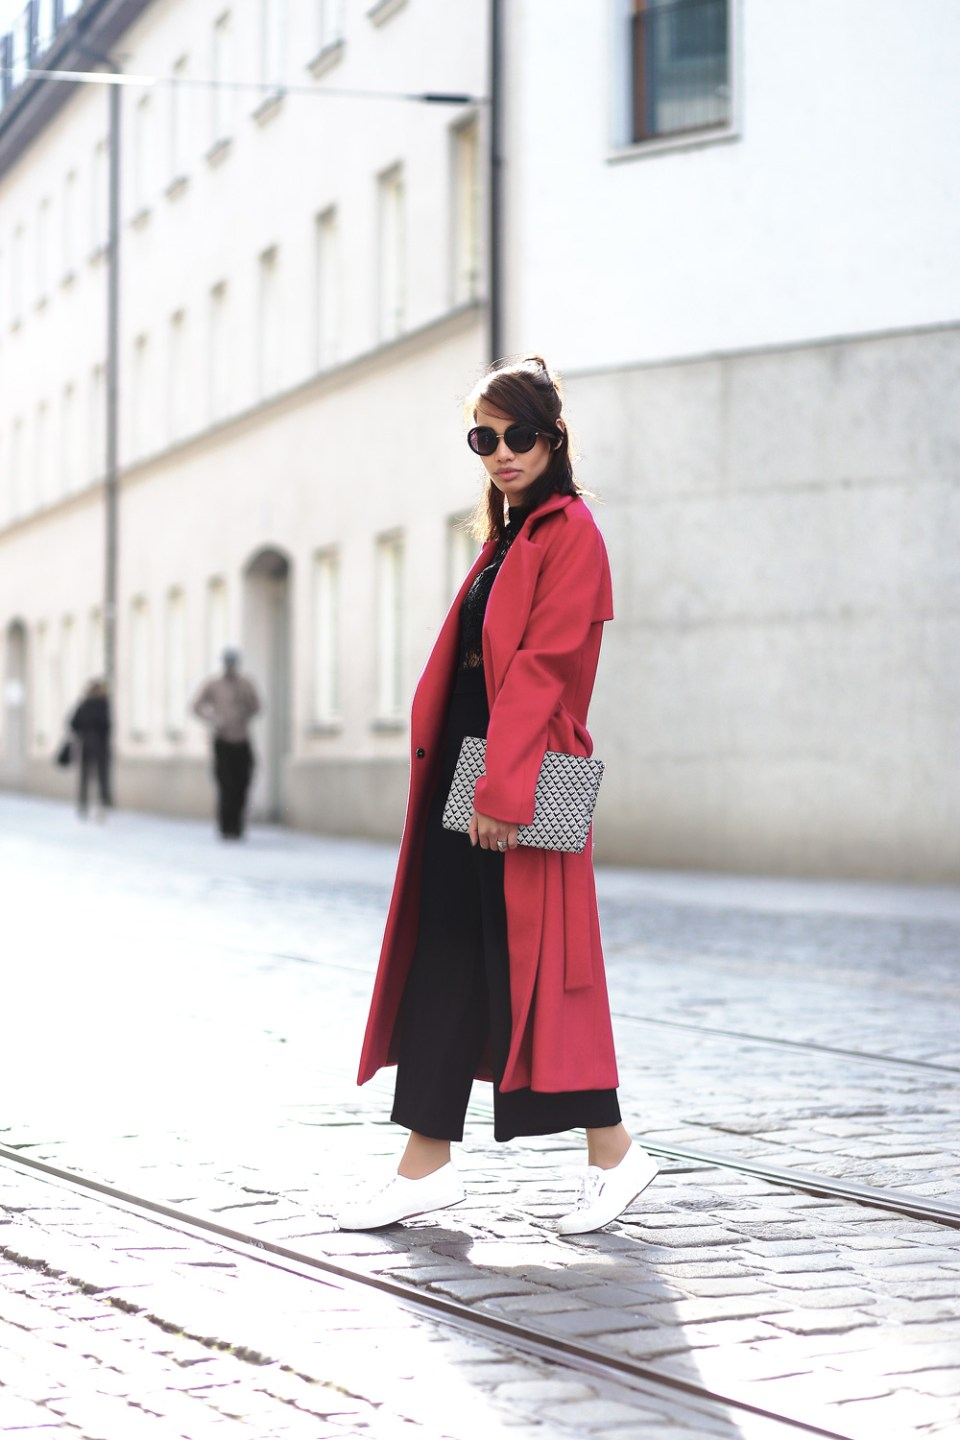 PINK-MANTEL-COAT-LACE-OVERALL-CULOTTES-SUPERGA-ZARA-THEFASHIONANARCHY-LOOK-STYLE-OUTFIT-SNEAKER-BLACK-SPITZE-FASHIONBLOG-MODEBLOG-STYLEBLOG-MUNICH-DIANABUENGER-6